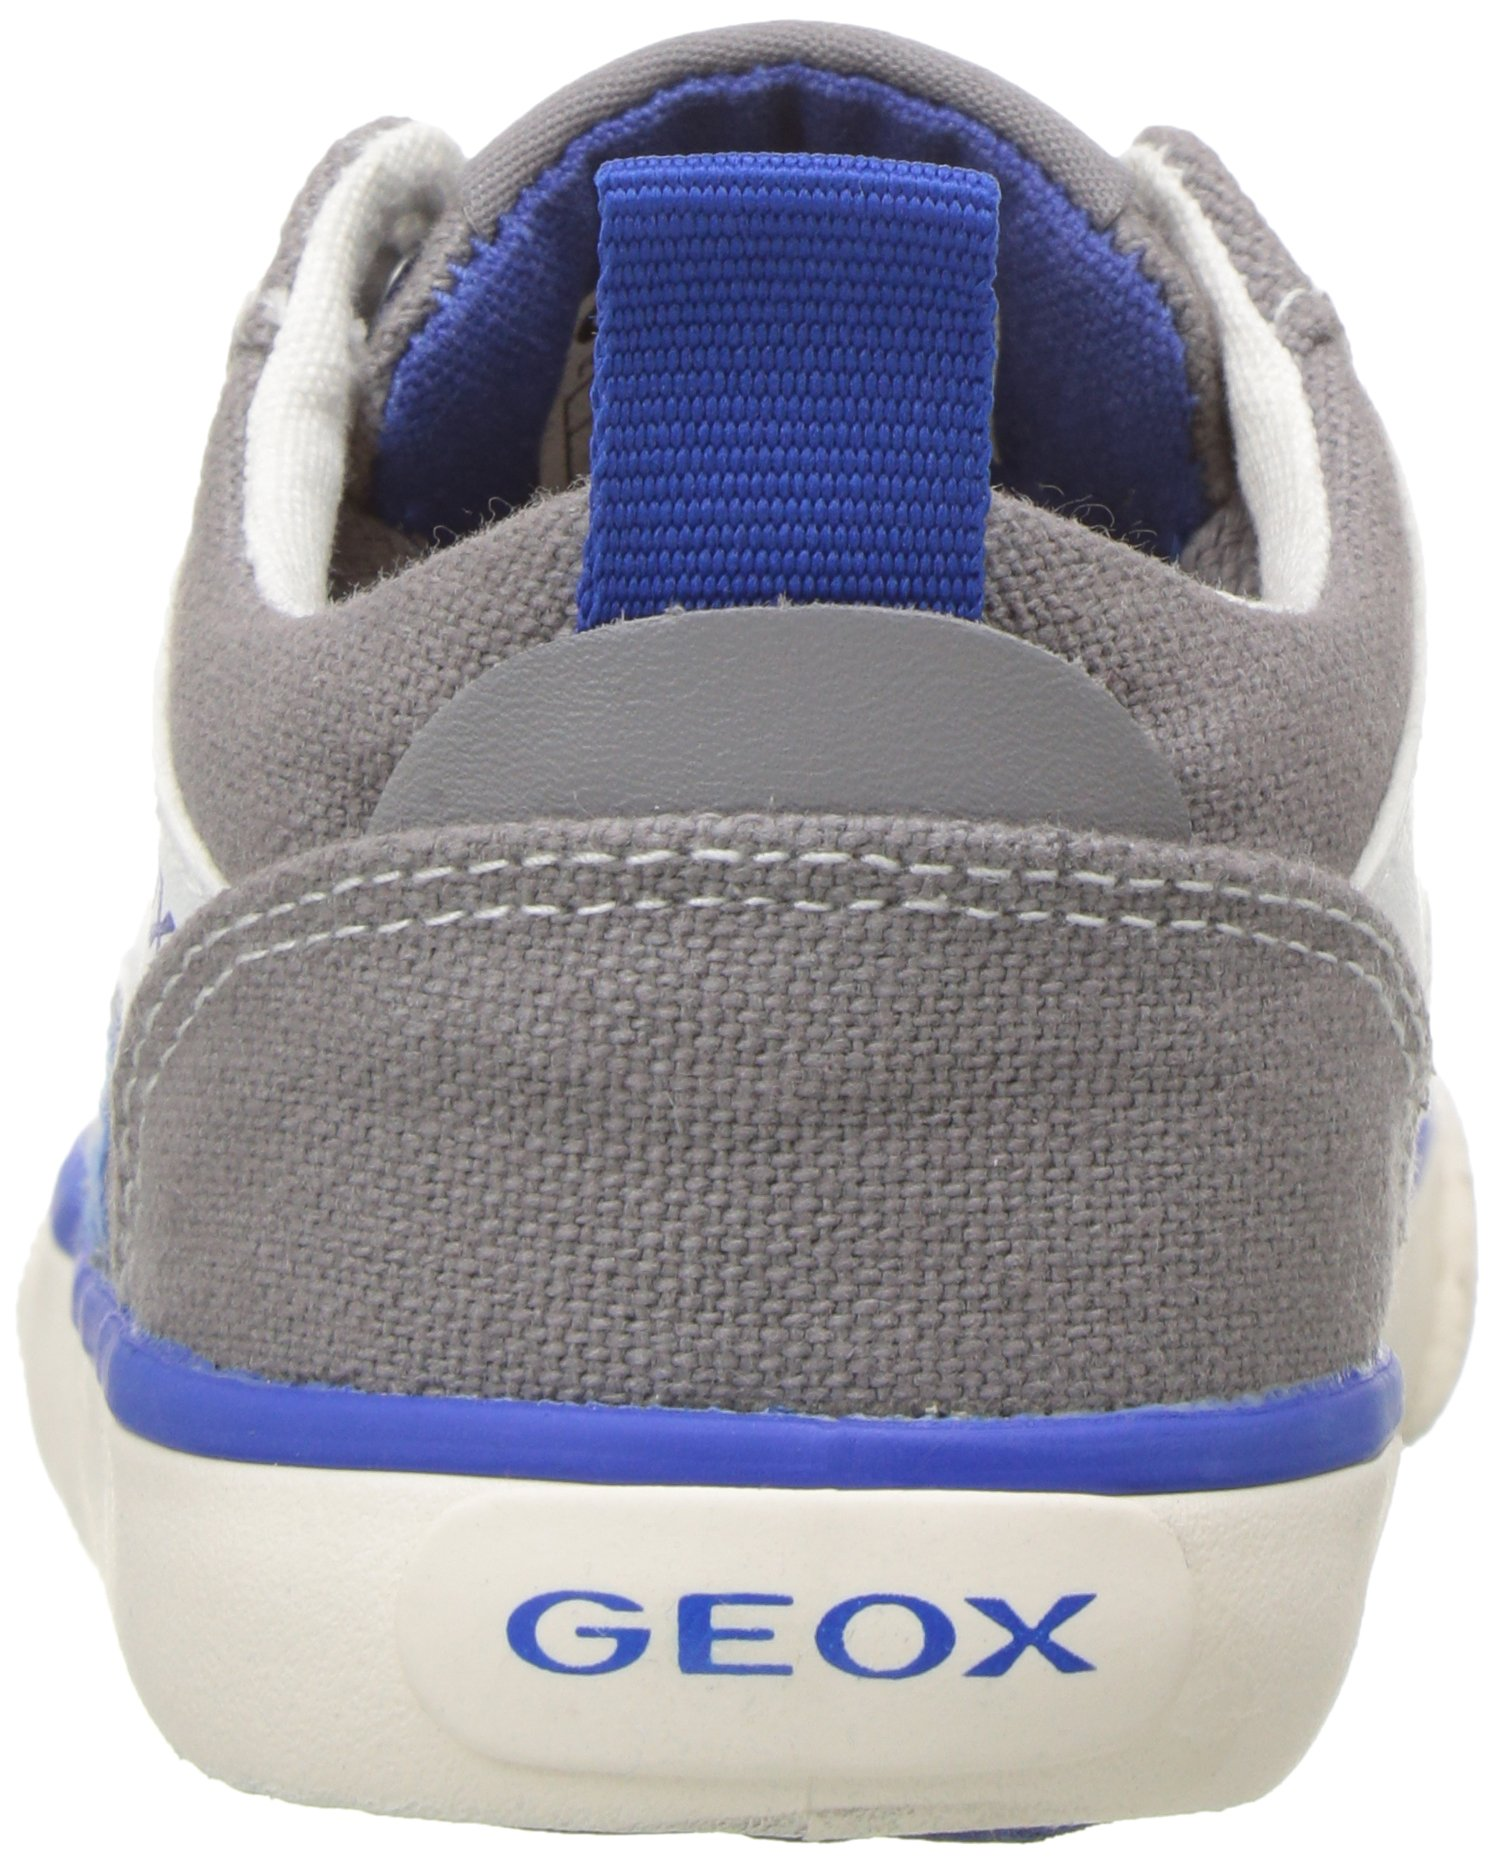 Geox Boys' JR KIWIBOY 89 Slip-On Grey/Royal 36 EU/4 M US Big Kid by Geox (Image #2)